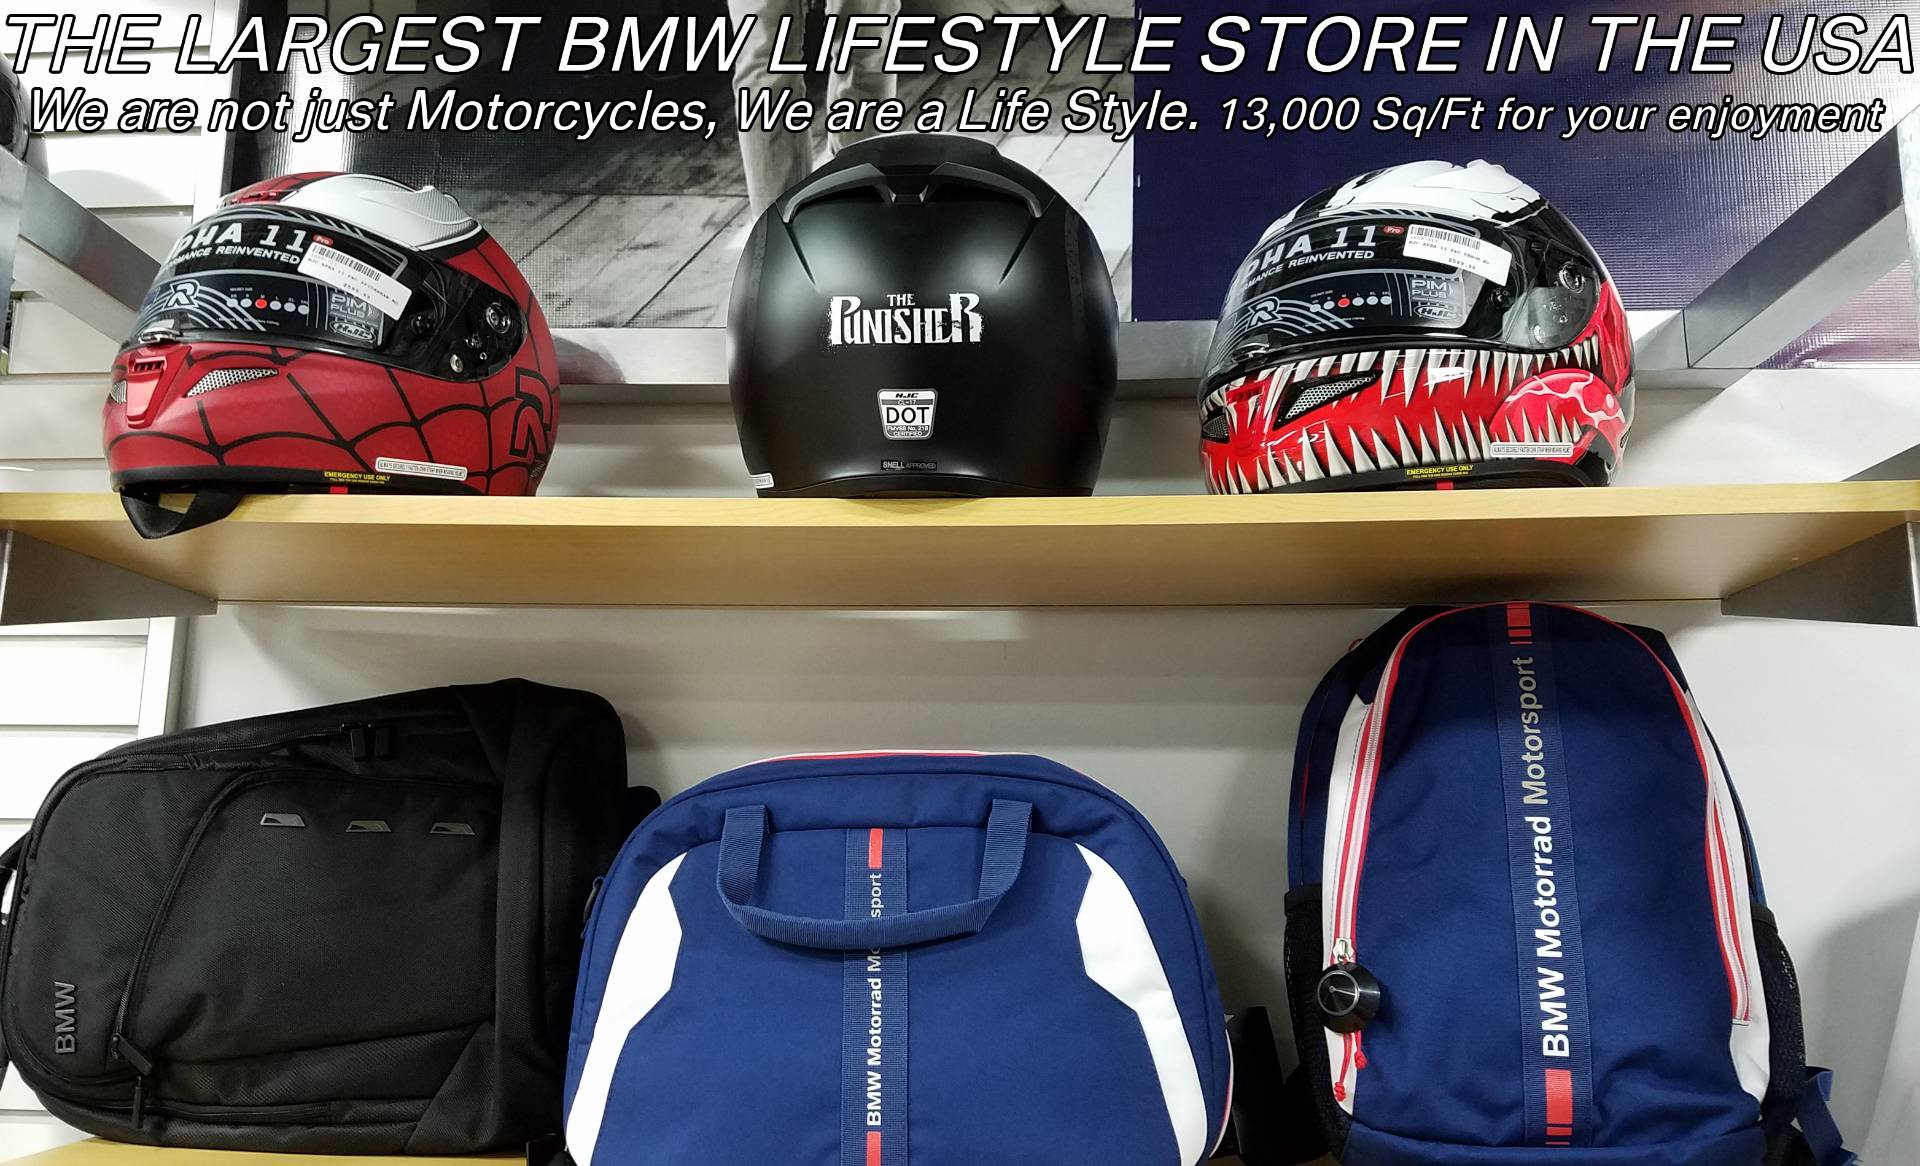 New 2019 BMW G 310 GS for sale, BMW G 310GS for sale, BMW Motorcycle G310GS, new BMW 310, Dual, BMW. BMW Motorcycles of Miami, Motorcycles of Miami, Motorcycles Miami, New Motorcycles, Used Motorcycles, pre-owned. #BMWMotorcyclesOfMiami #MotorcyclesOfMiami - Photo 24